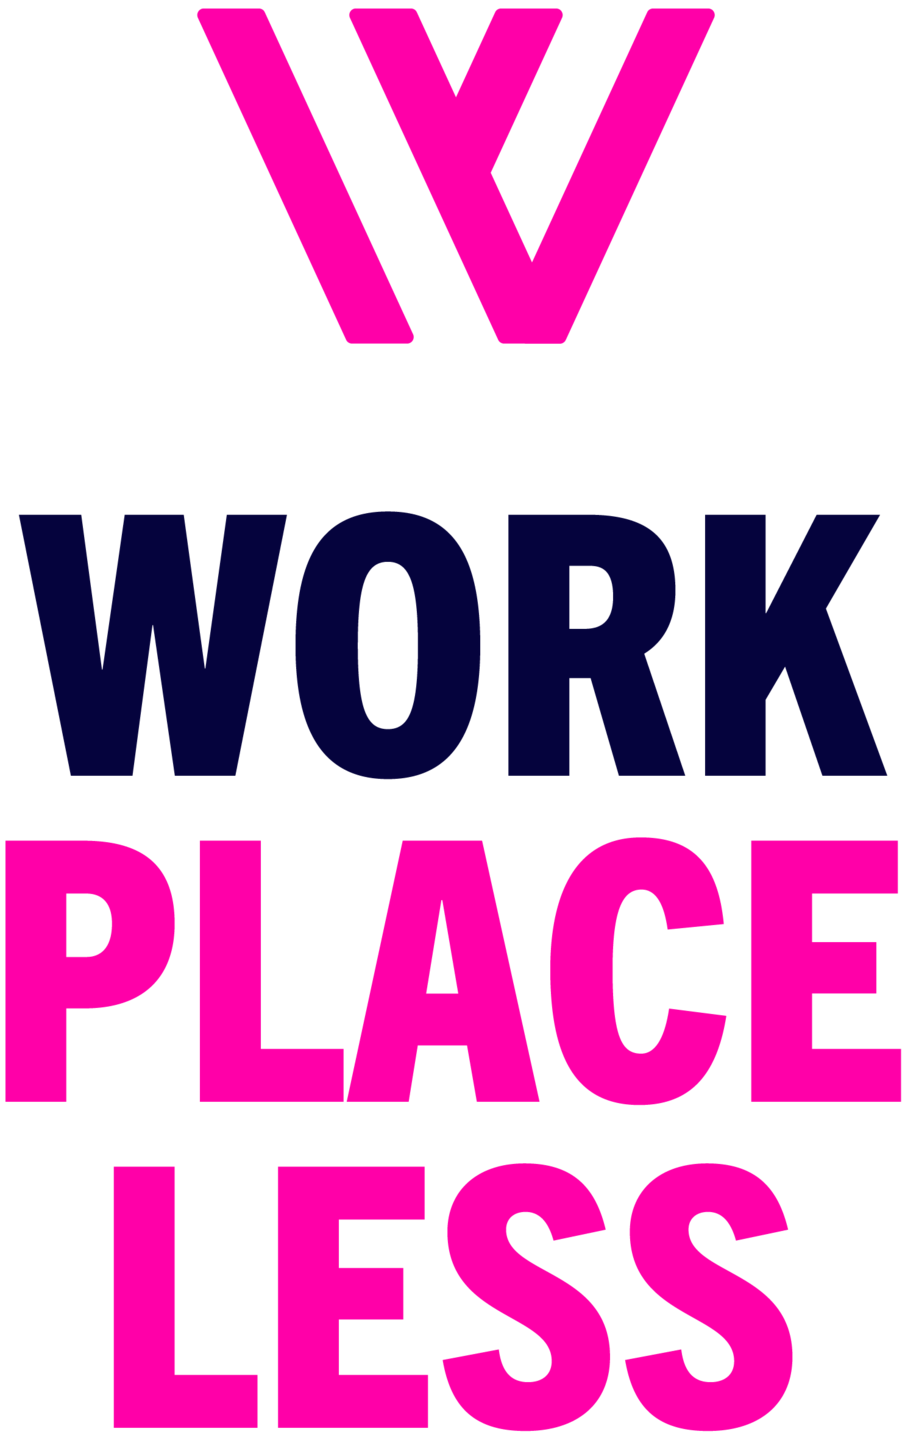 Workplaceless Logo